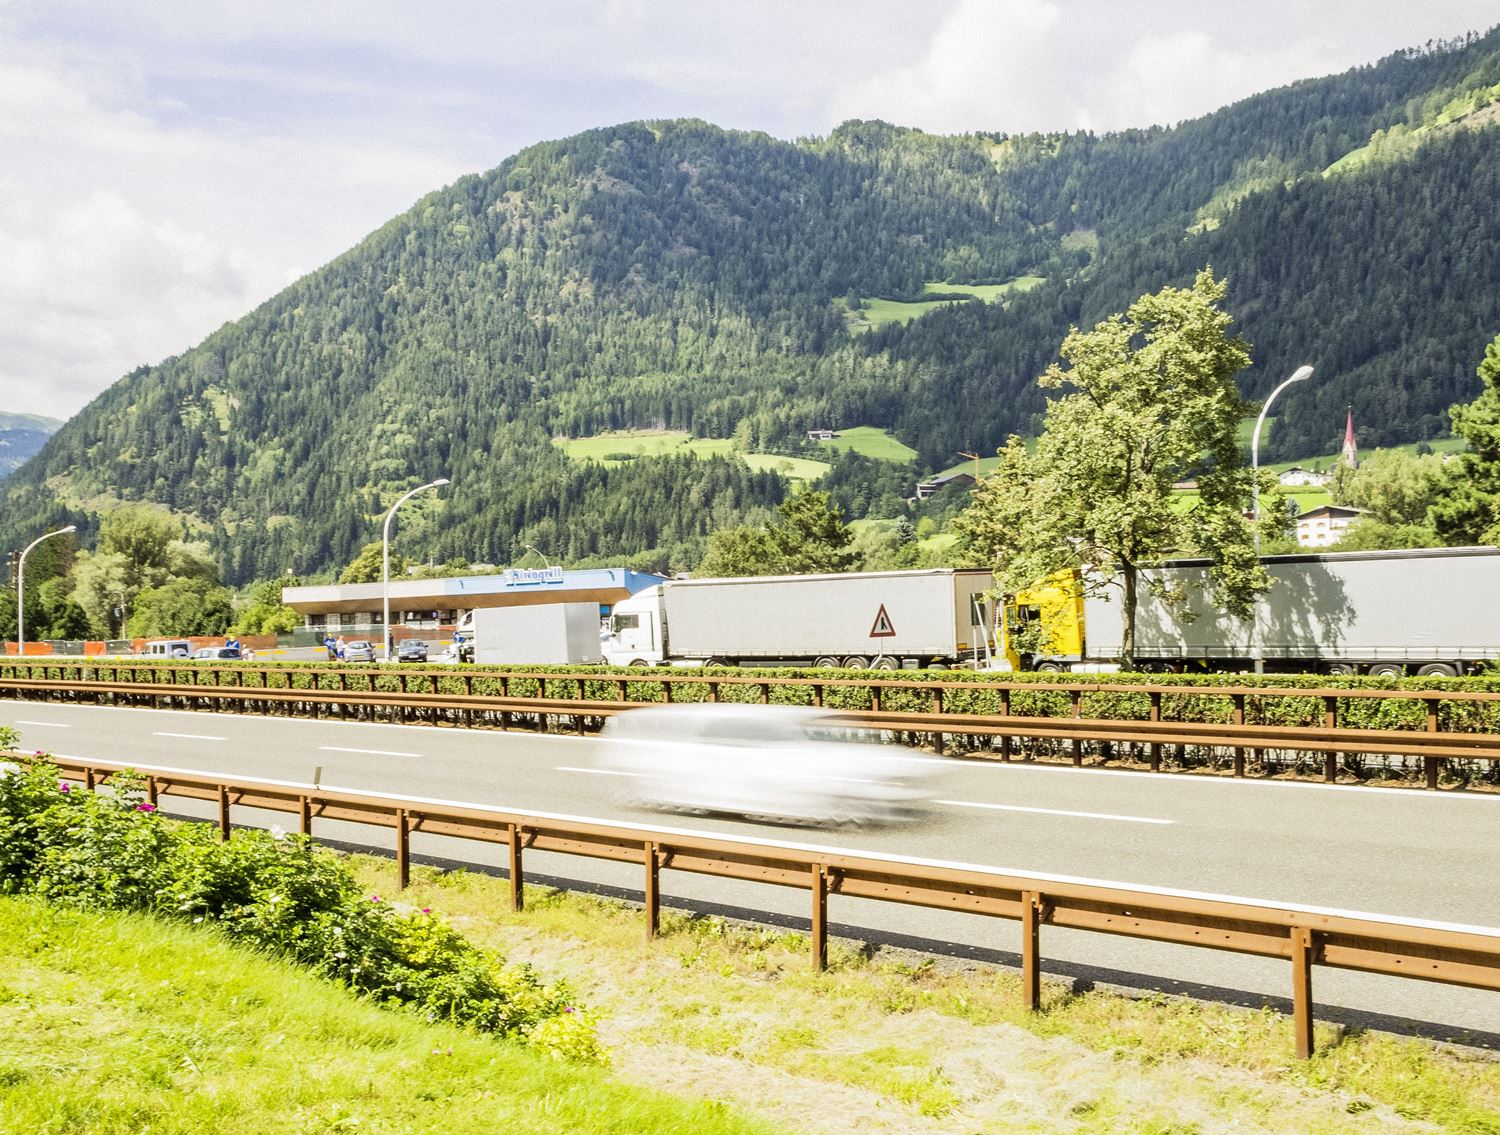 These are the days in 2021 when block checks will be carried out in Tyrol